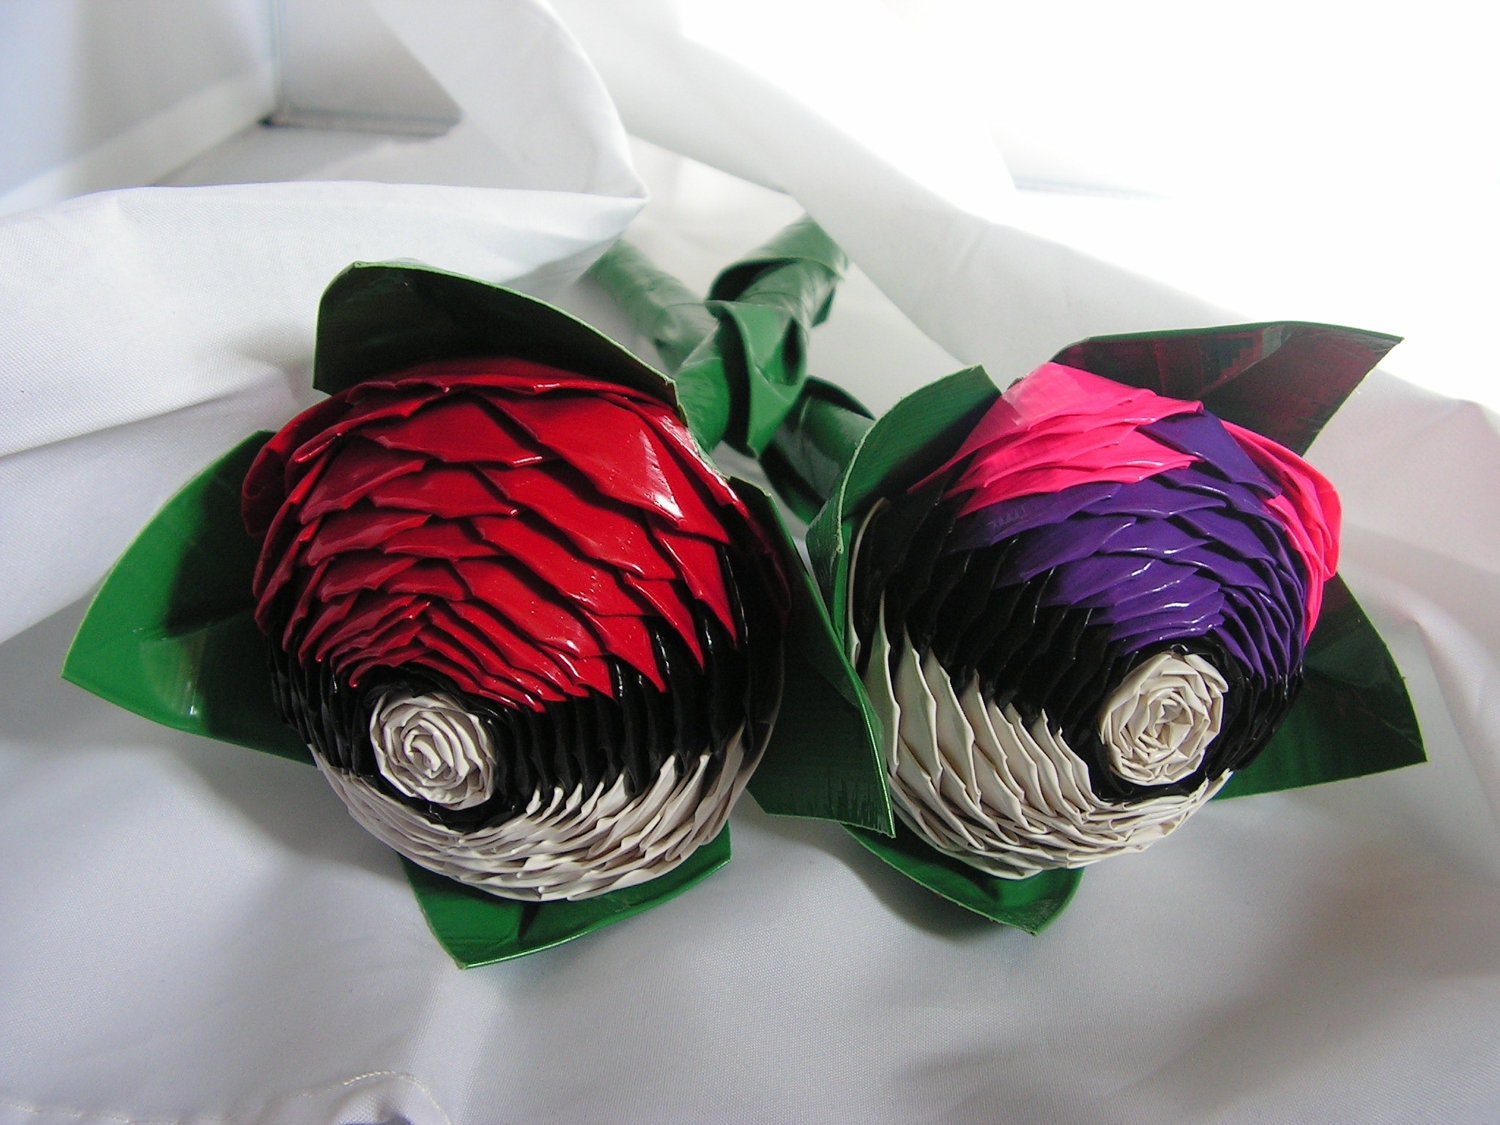 Duct tape pokeball and masterball rose set by quirkyqrafts on etsy